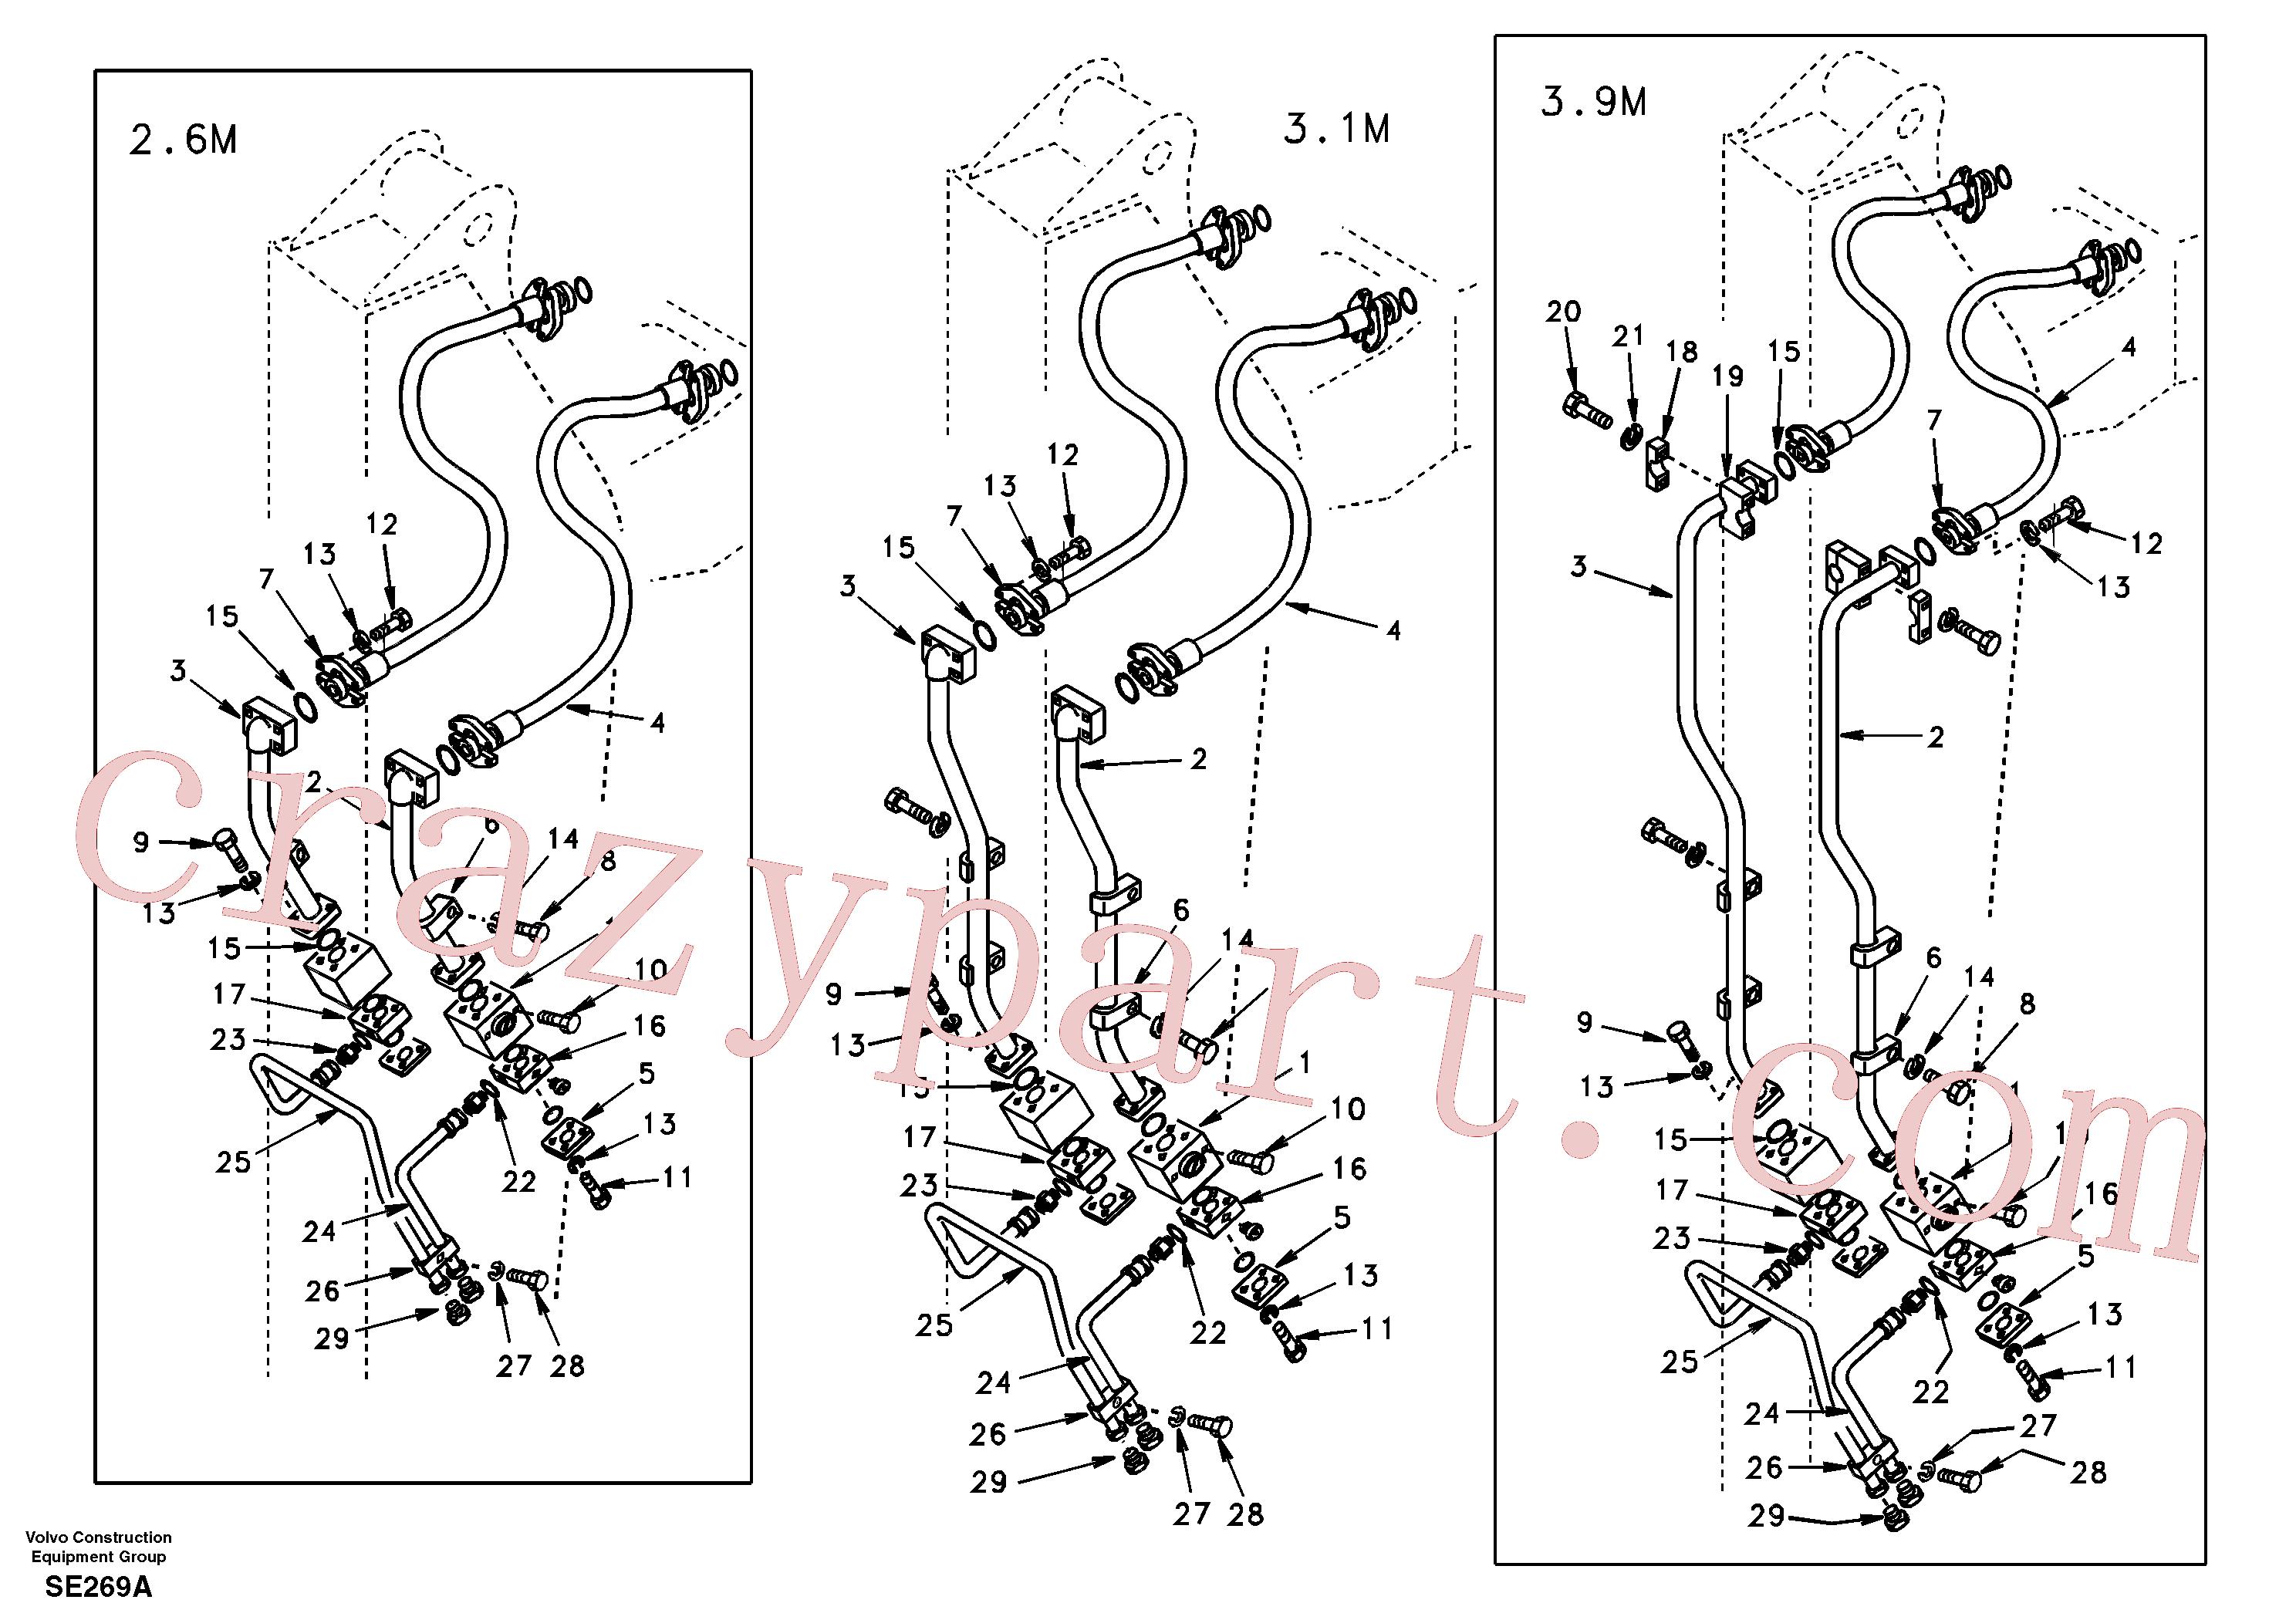 SA1174-53420 for Volvo Working hydraulic, hammer and shear for dipper arm(SE269A assembly)